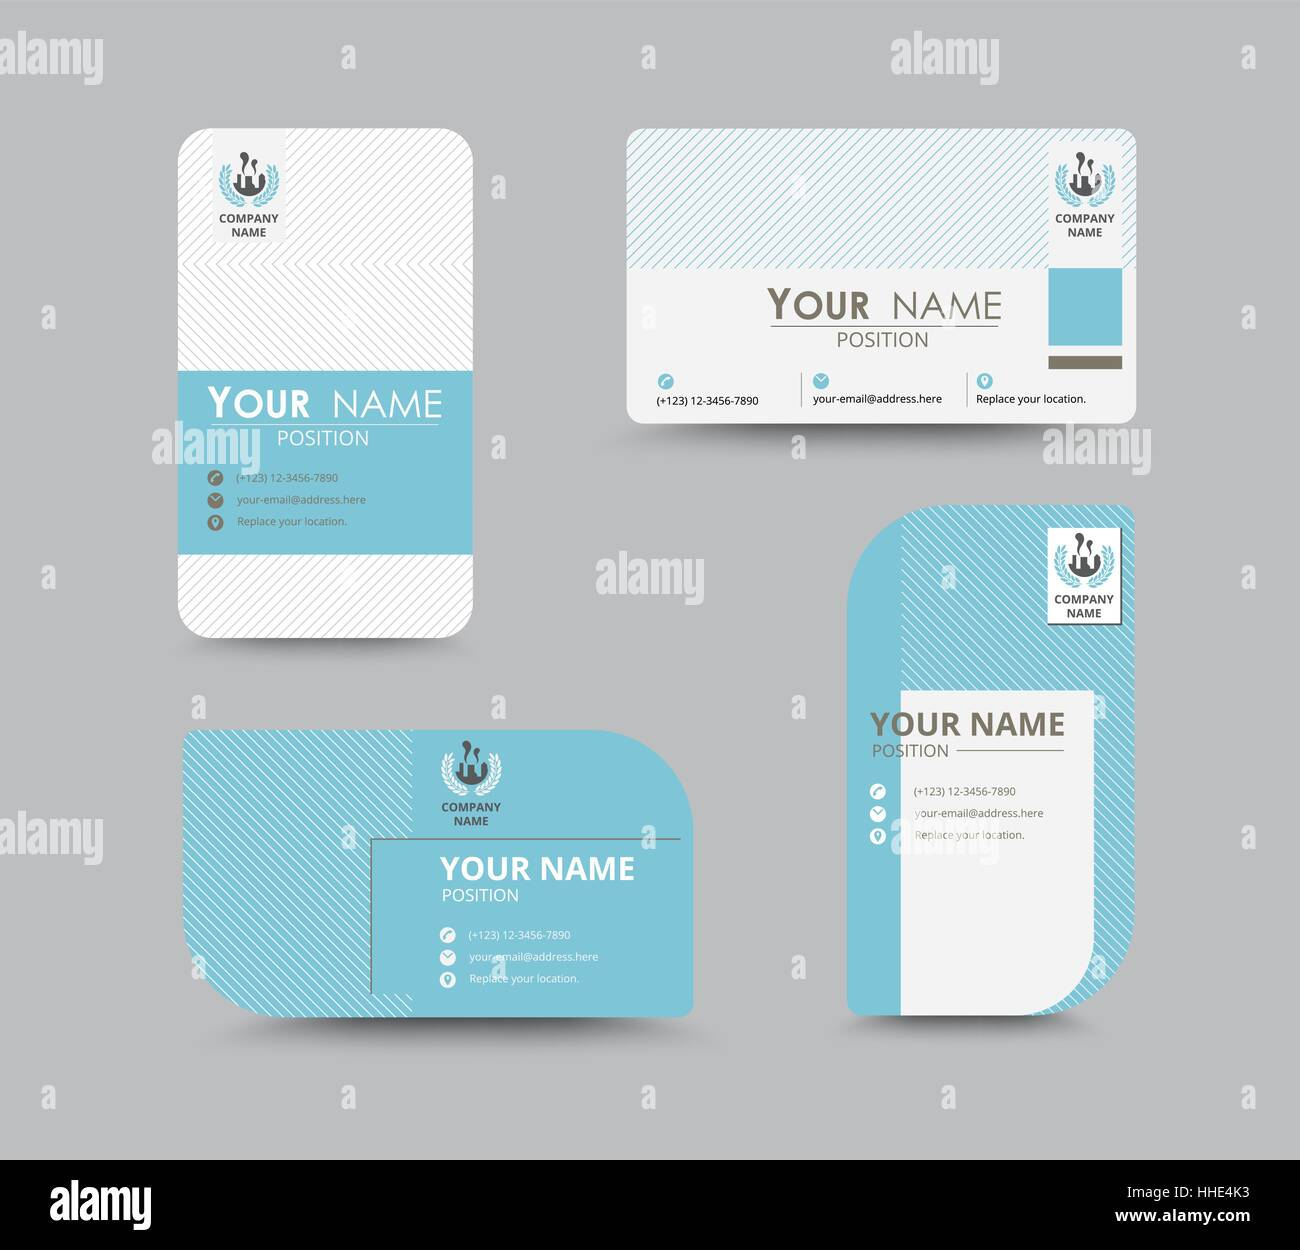 Business greeting card template design introduce card include business greeting card template design introduce card include sample text position vector illustration design kristyandbryce Image collections